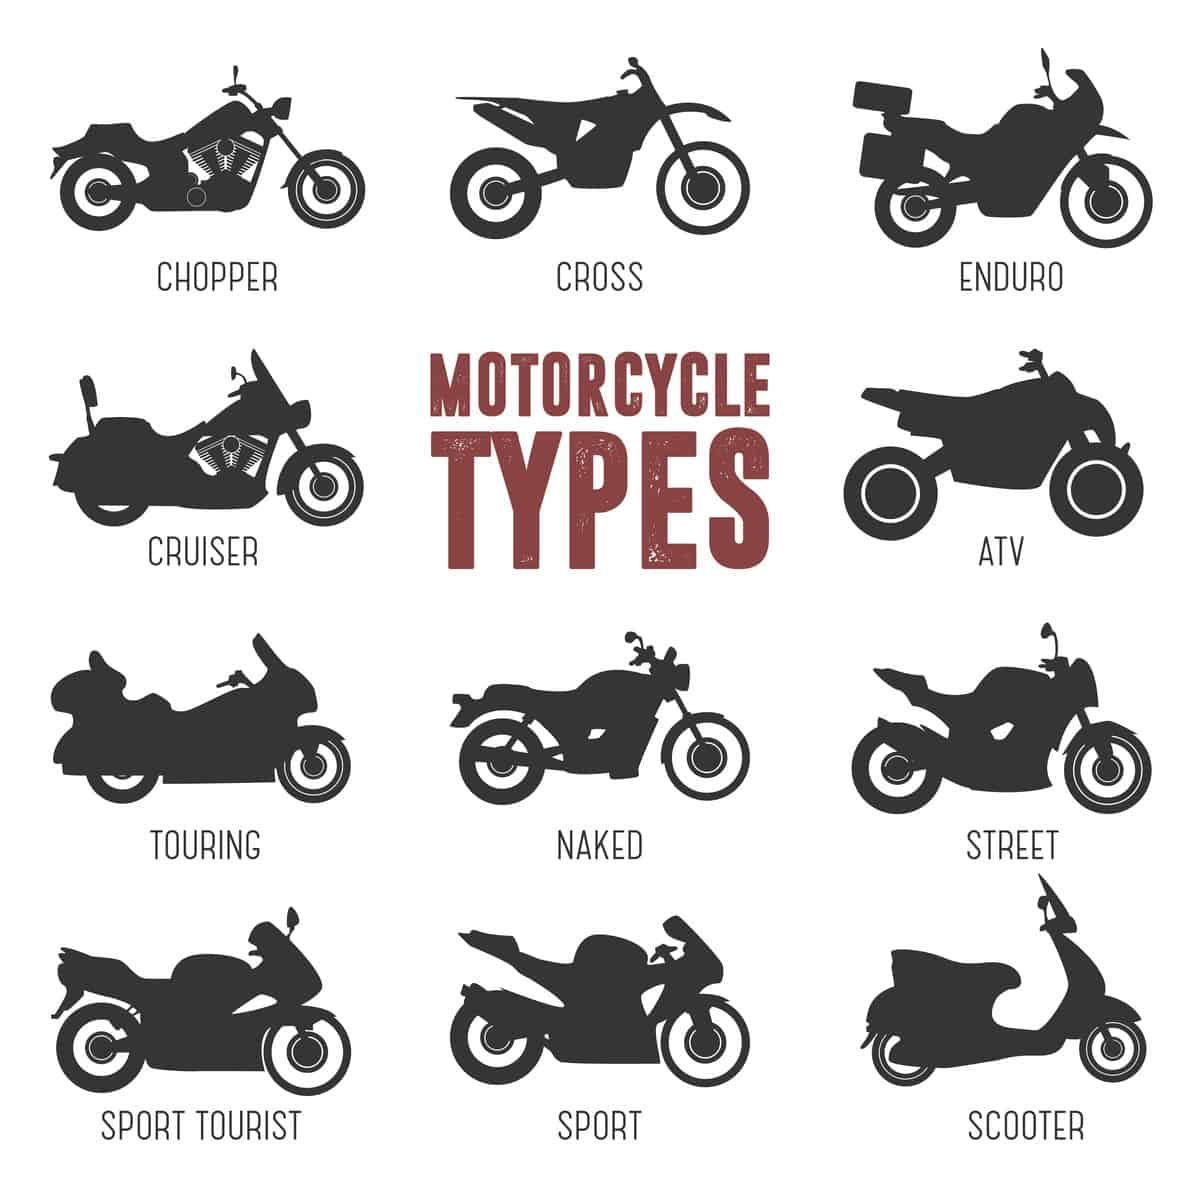 12 Different Types Of Motorcycles Guide Cyclomoteur Lavage